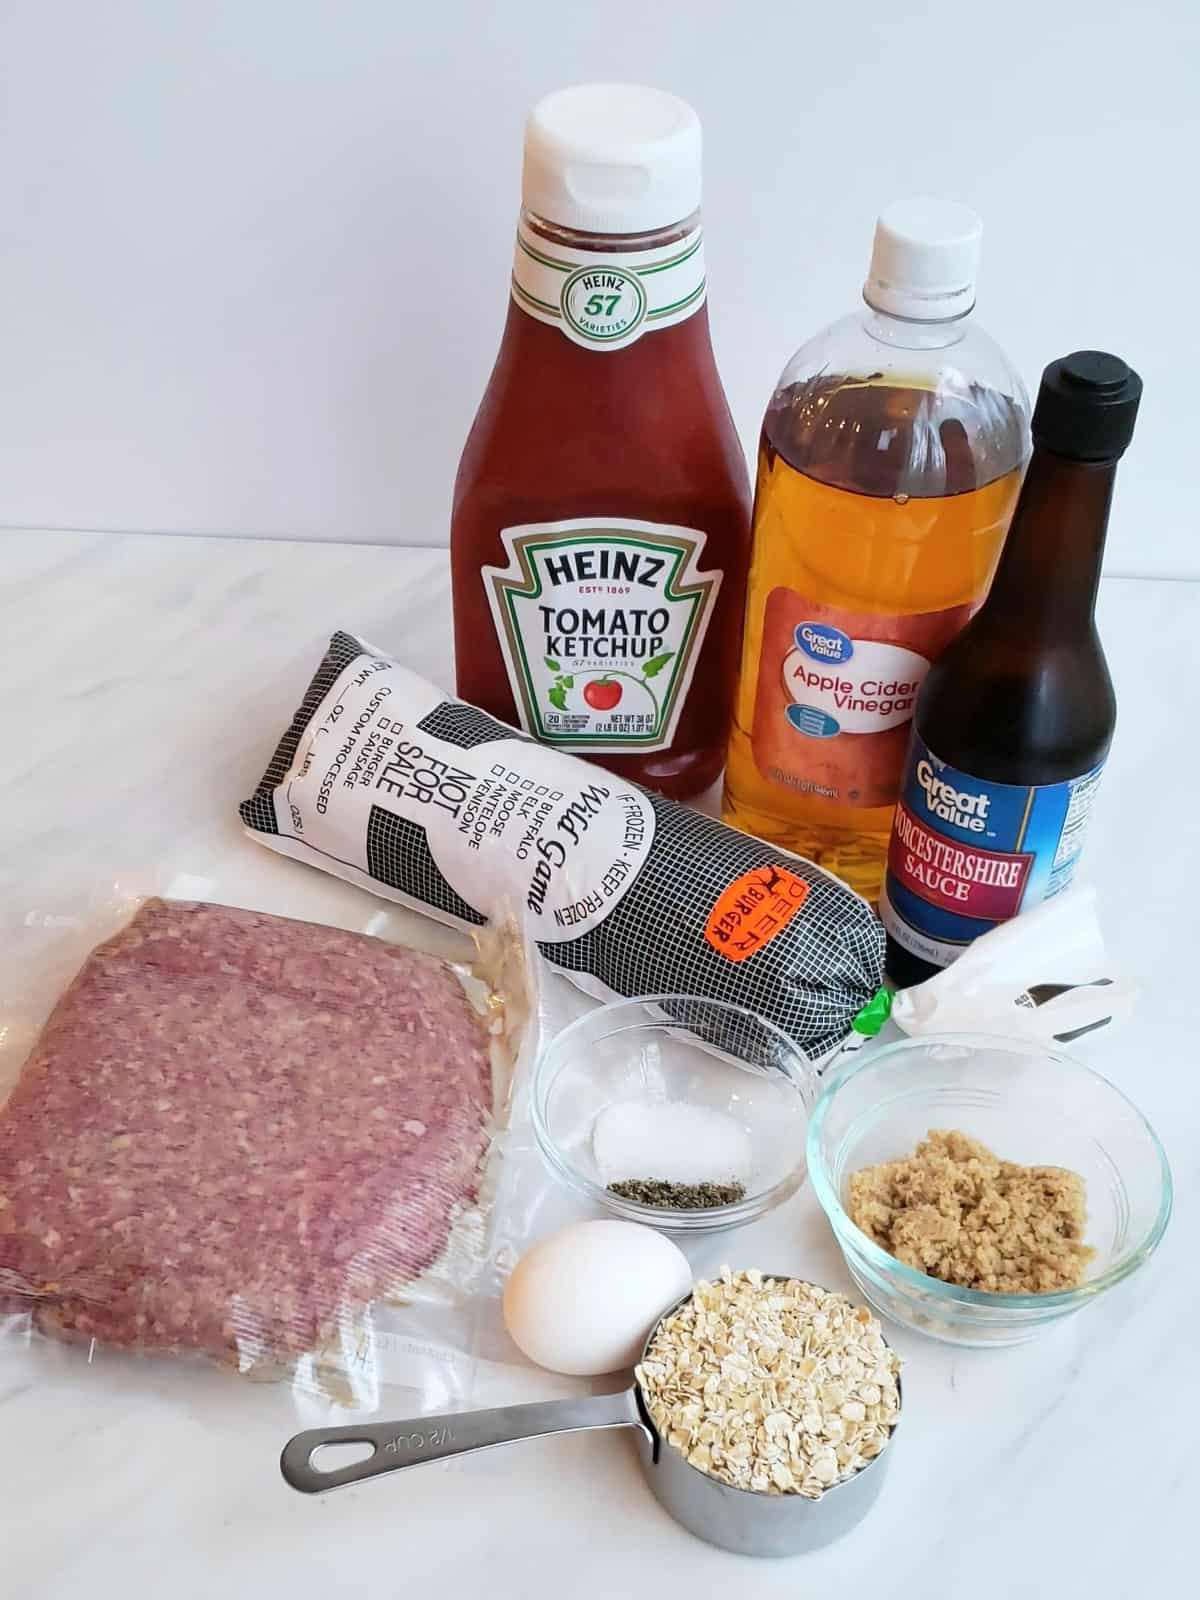 Ingredients on marble surface: ketchup, one pound ground meat, egg, brown sugar, vinegar, worcestershire sauce, venison